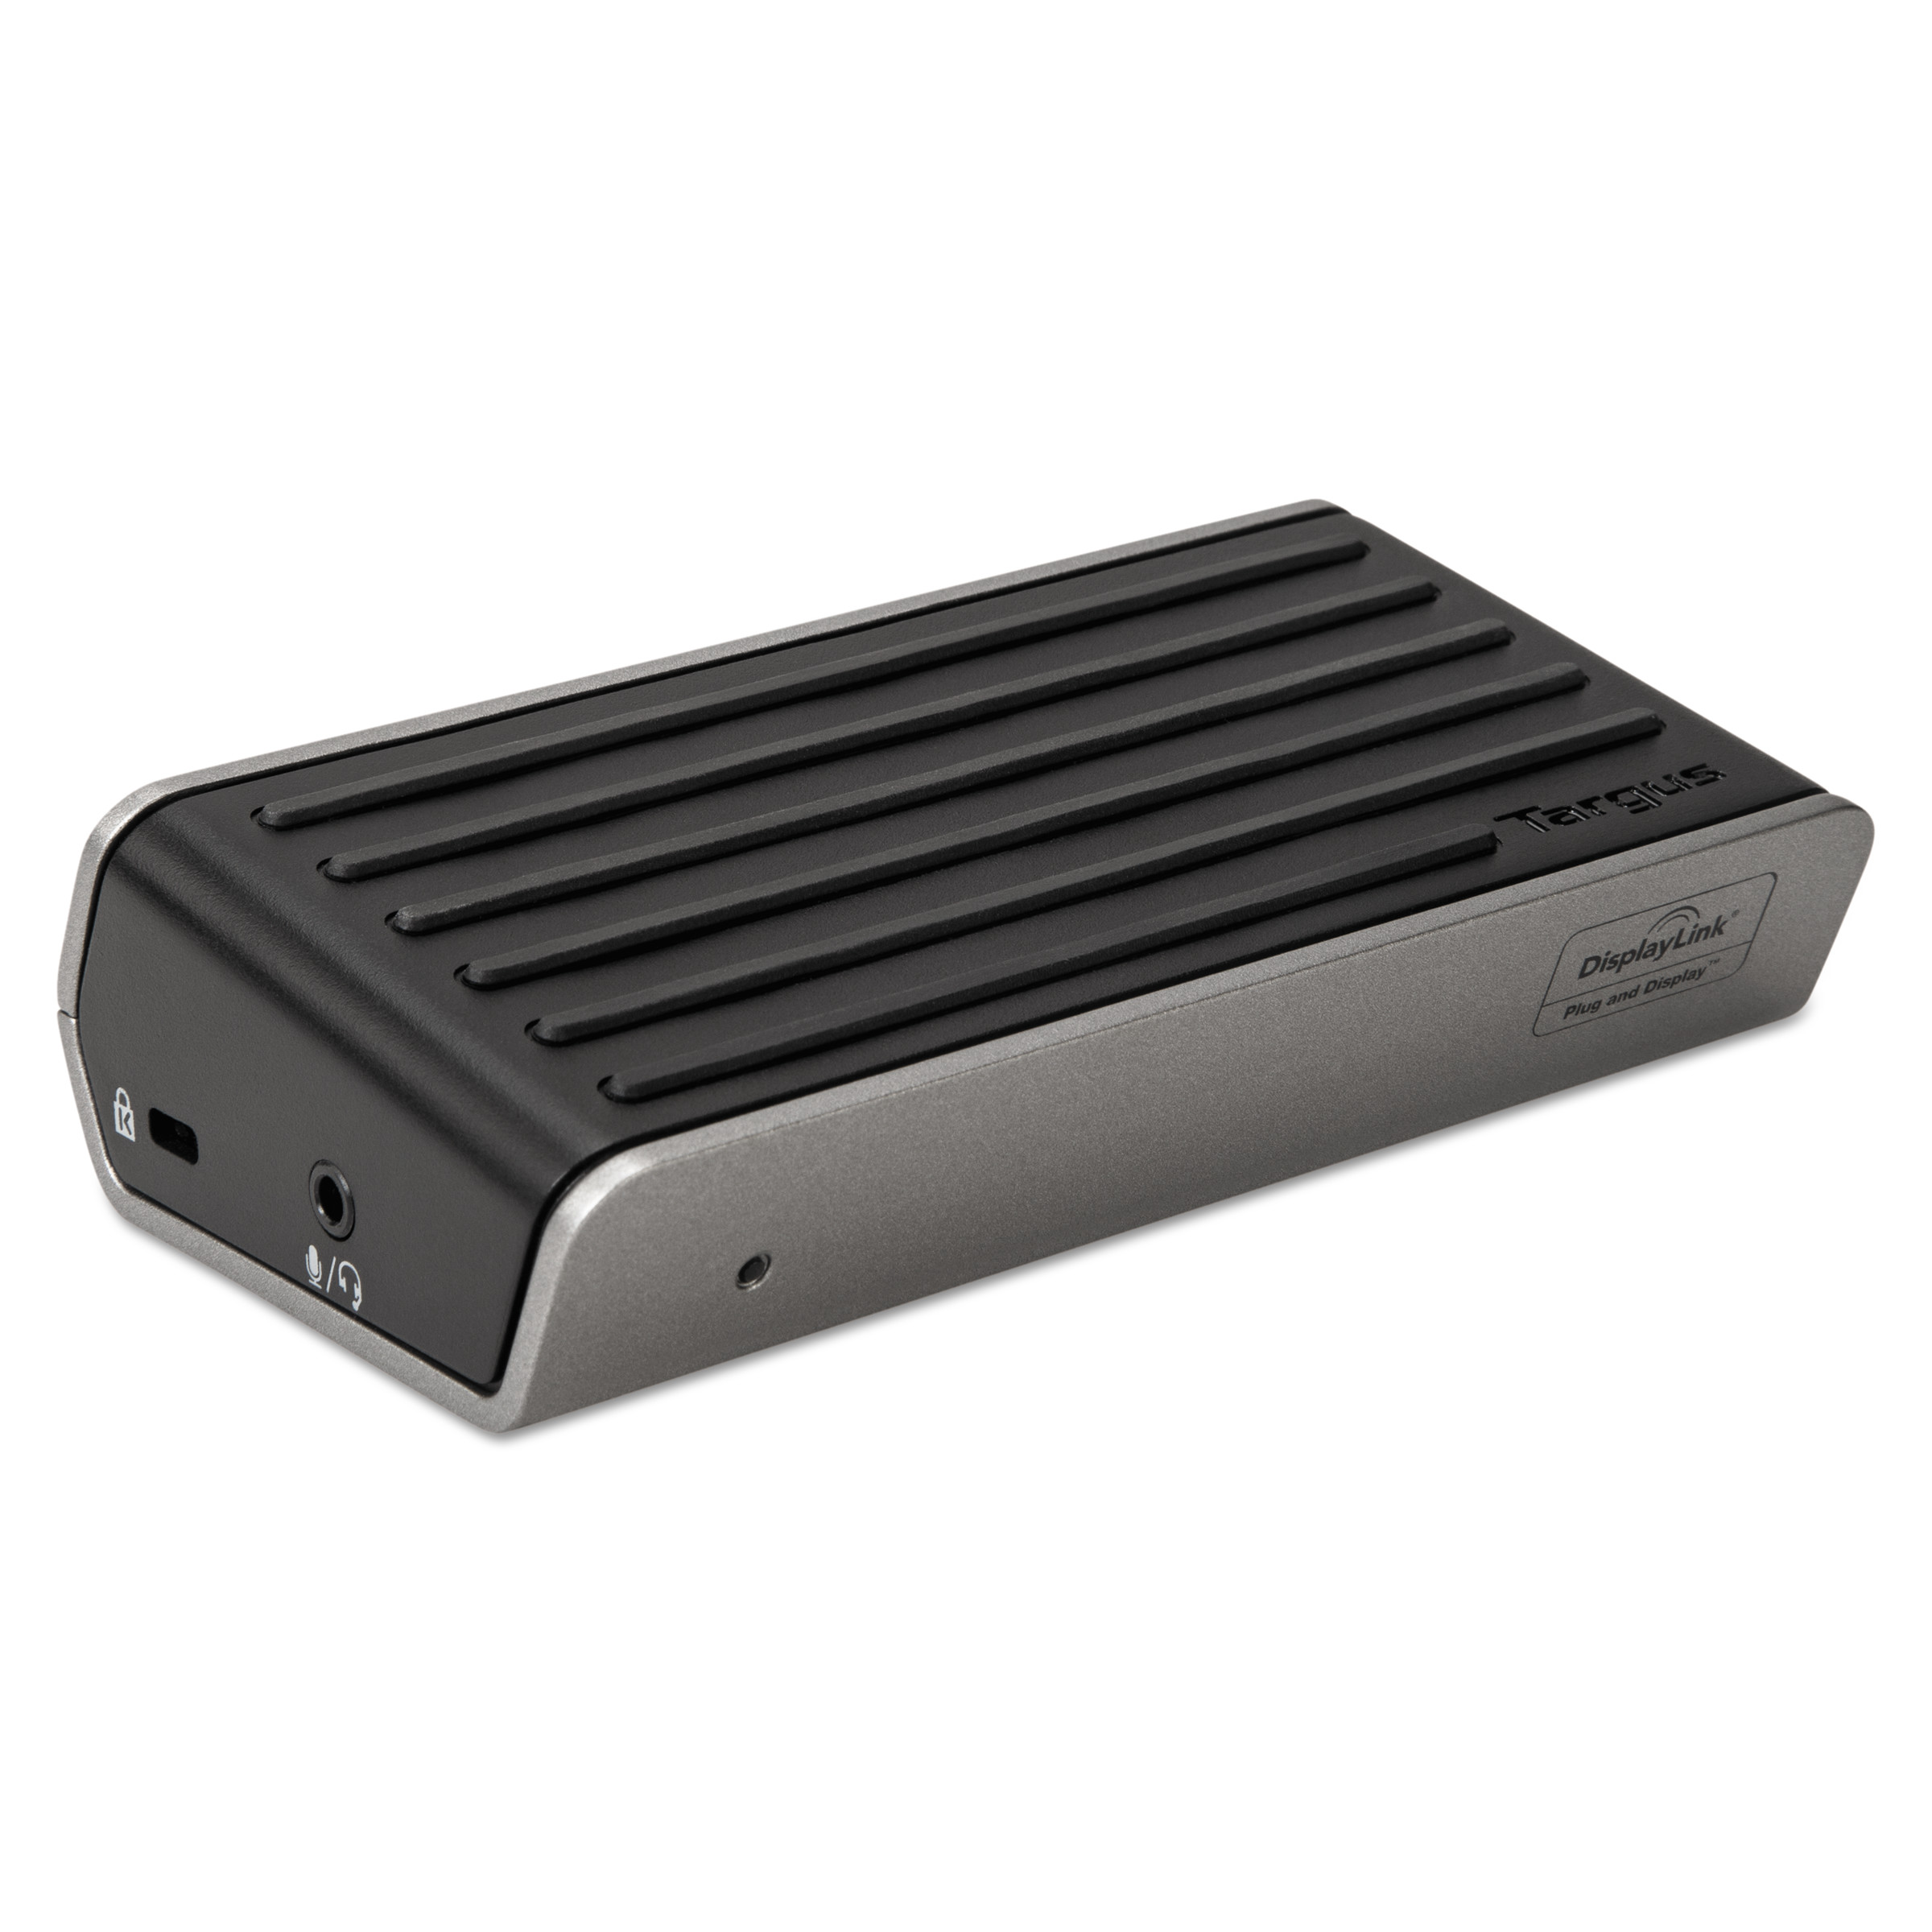 Targus 2K Universal Docking Station, 4 USB 1 Audio DVI/HDMI Display Port